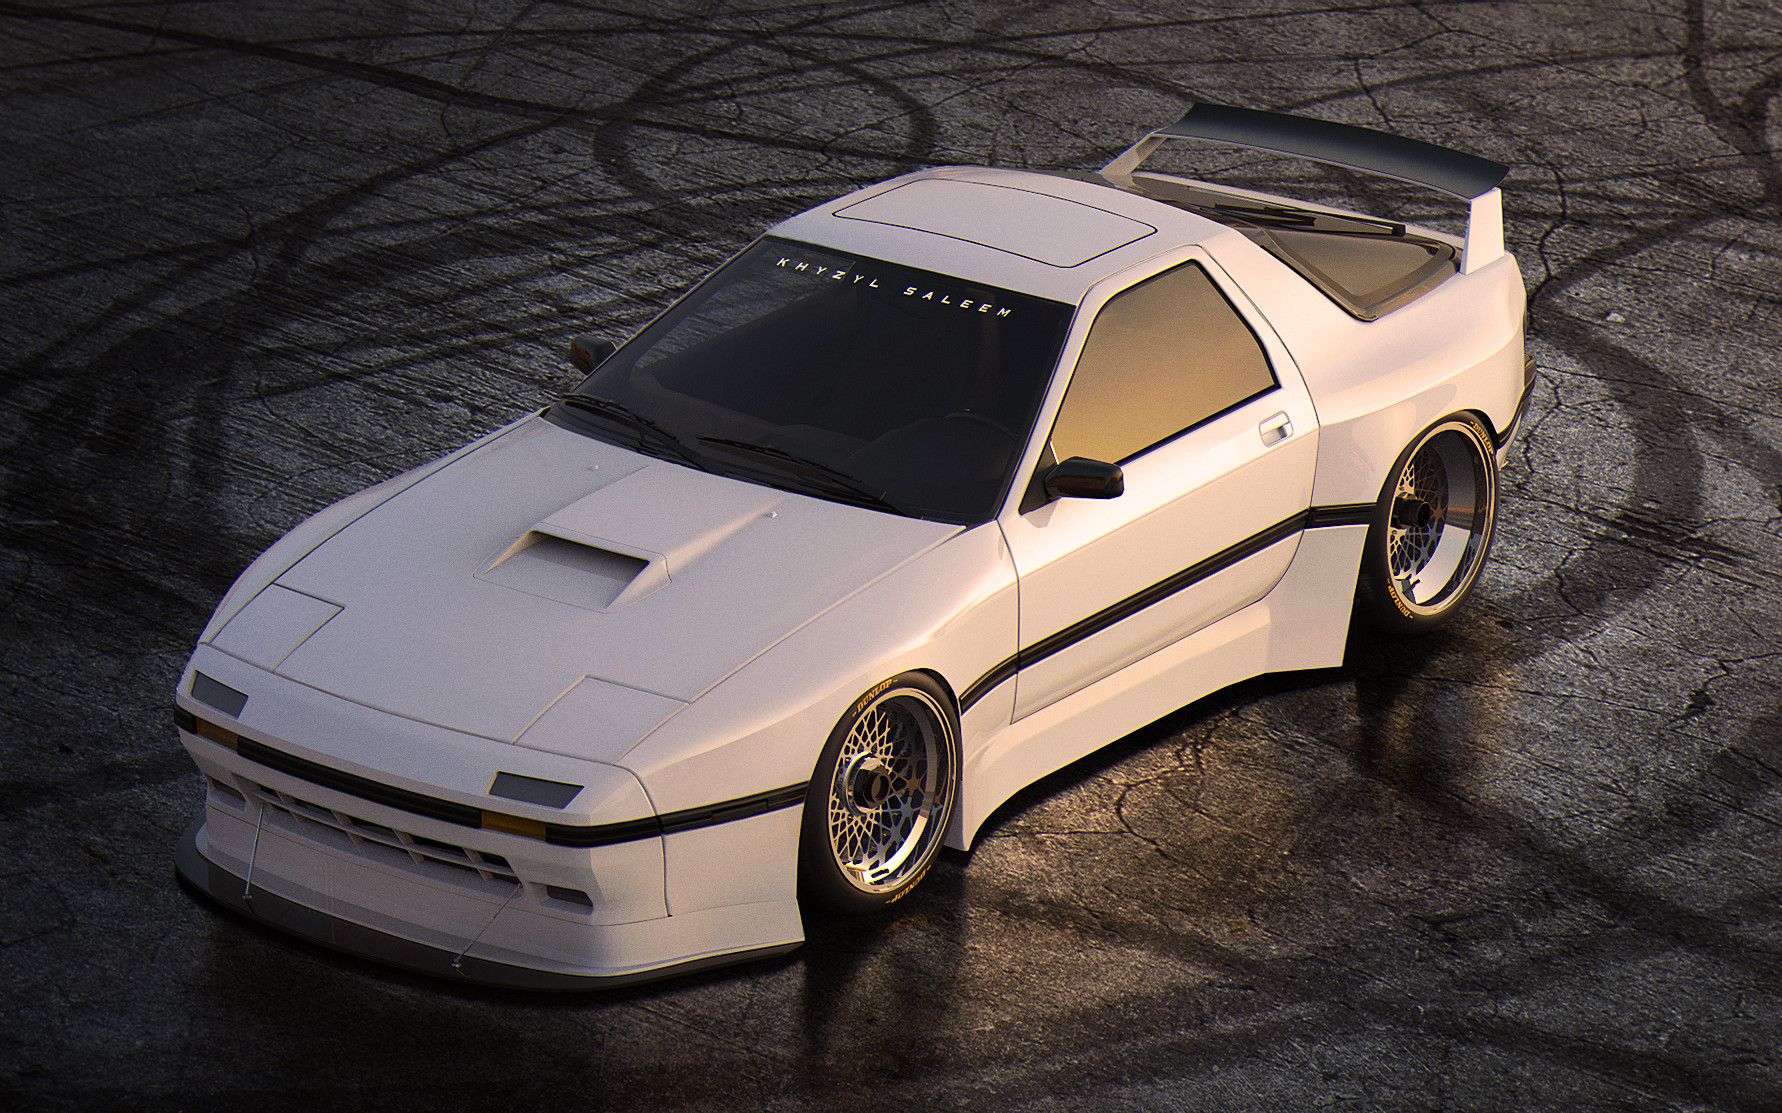 Khyzyl saleem rx7 white low